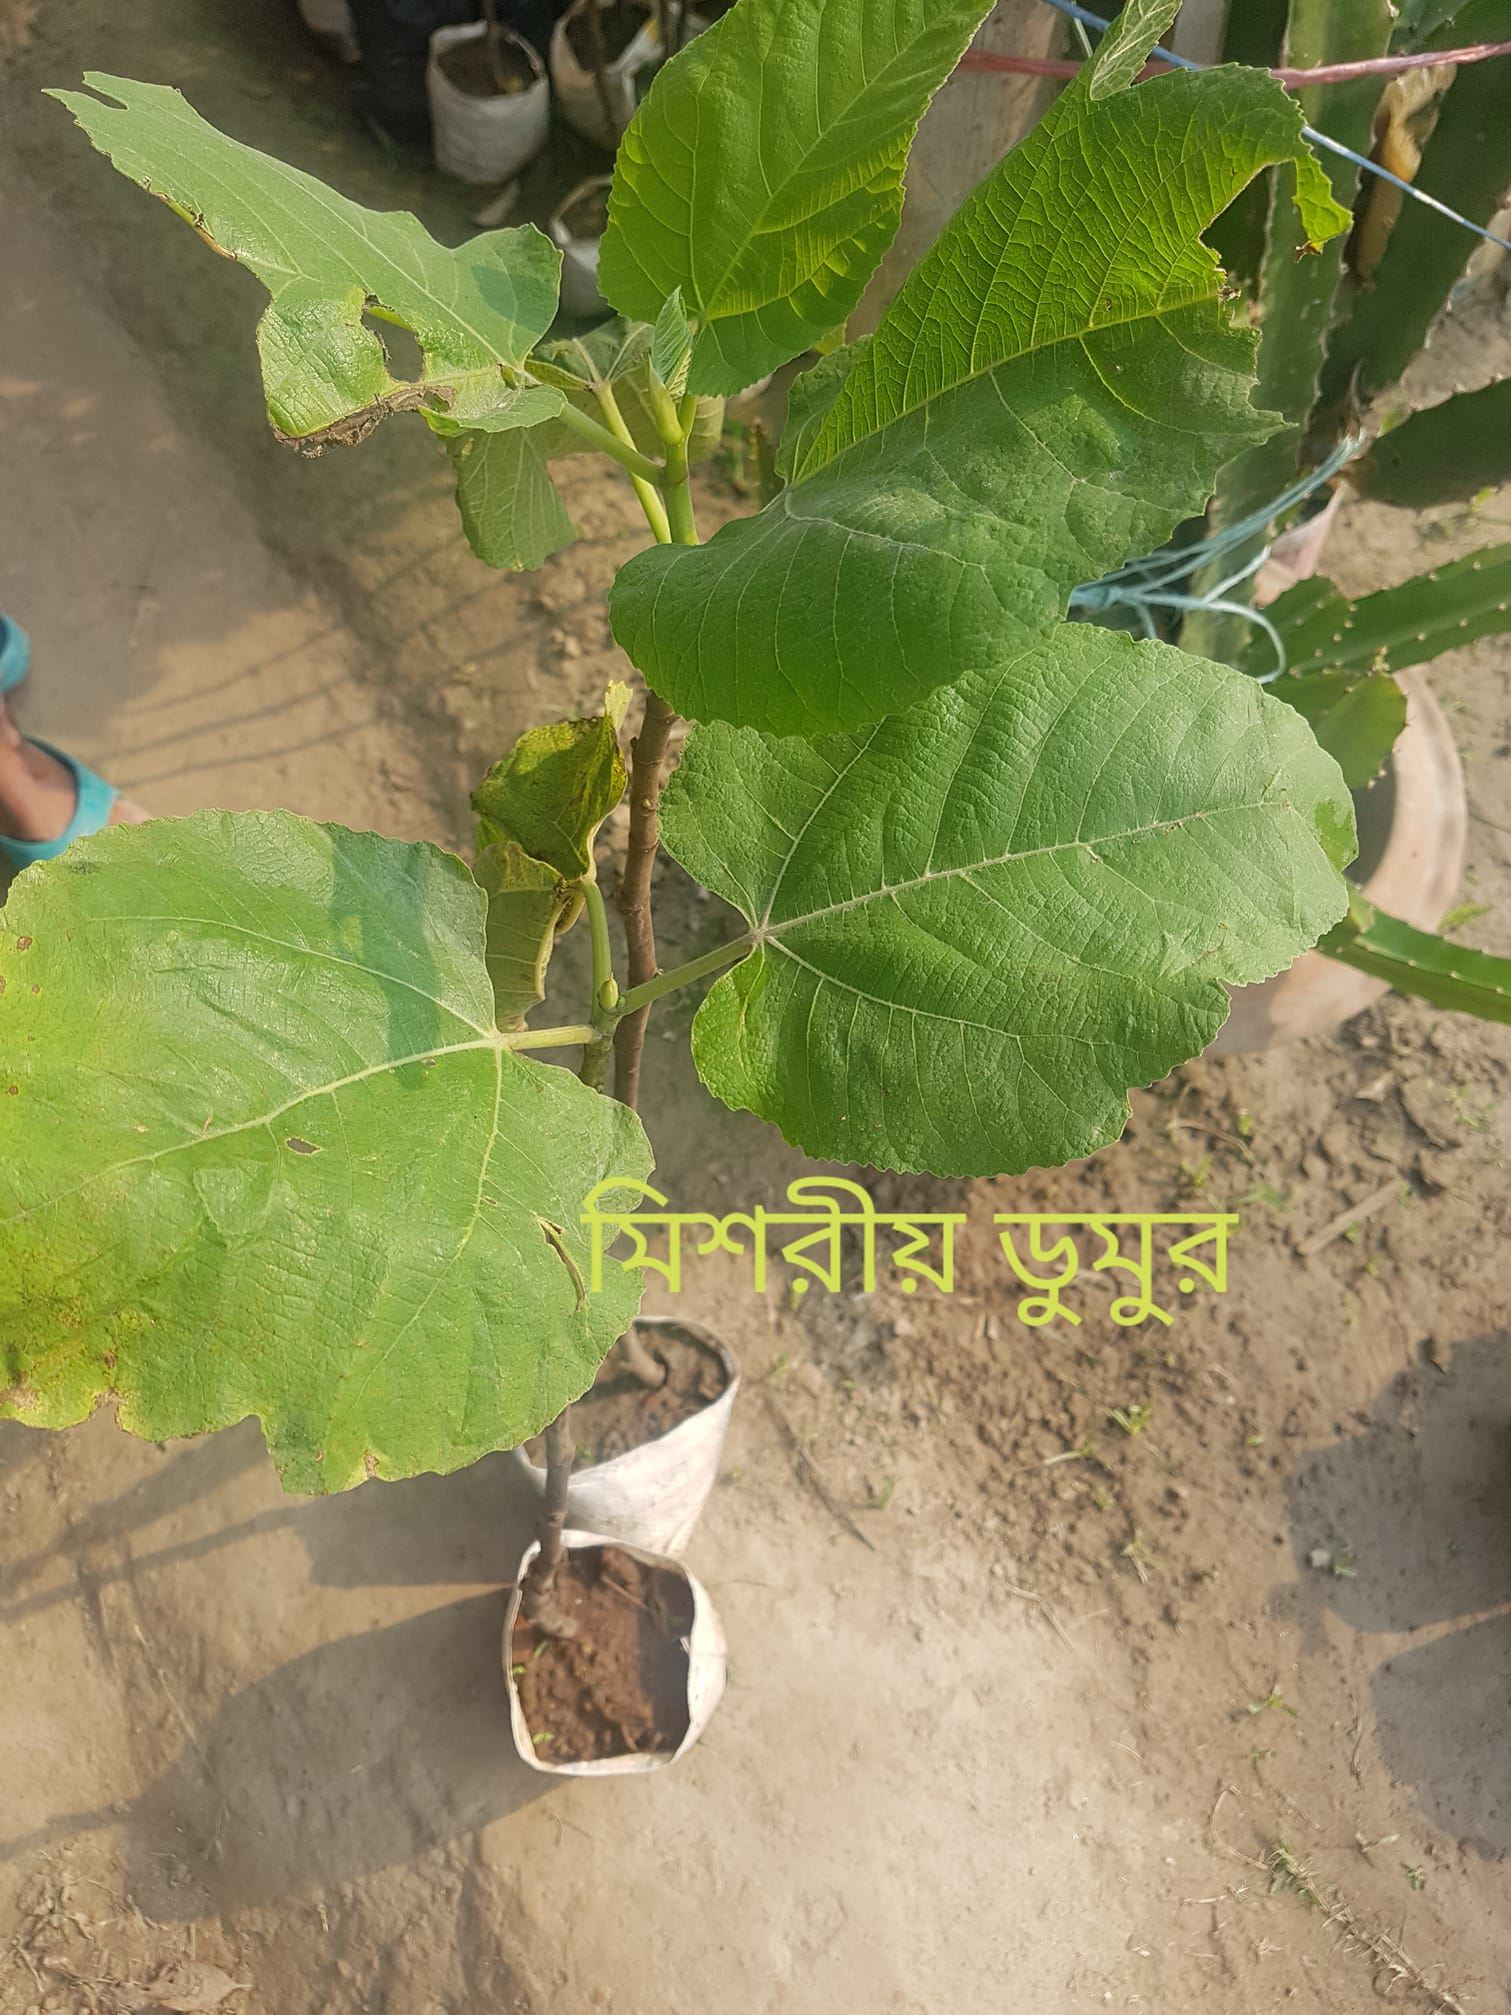 Egyptian Fig Plant For Sale in BD - GETSVIEW Market